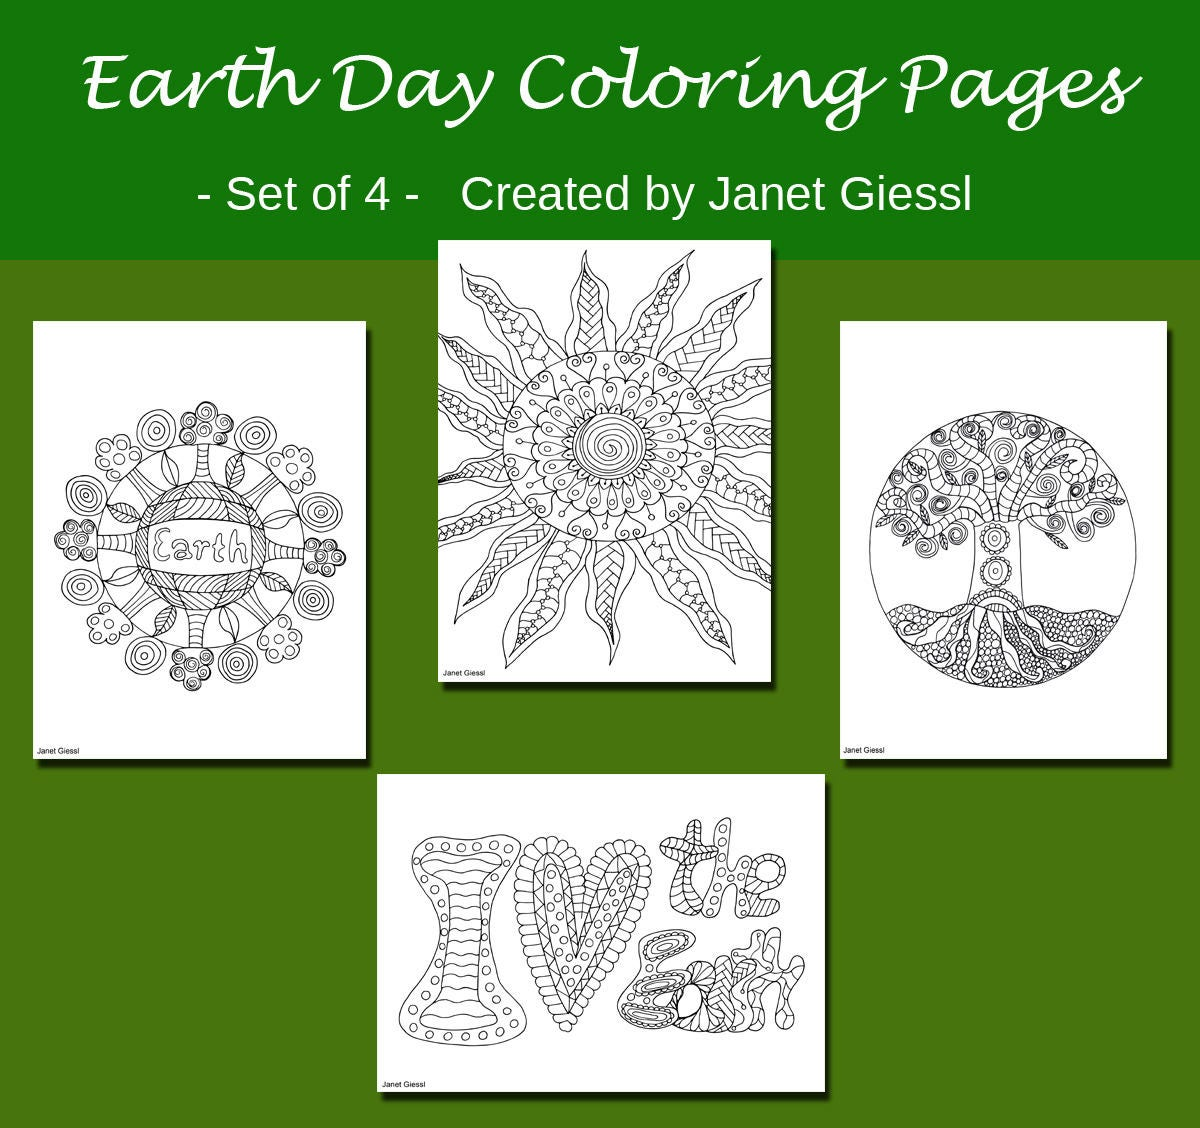 Earth Day Coloring Pages Set of 4